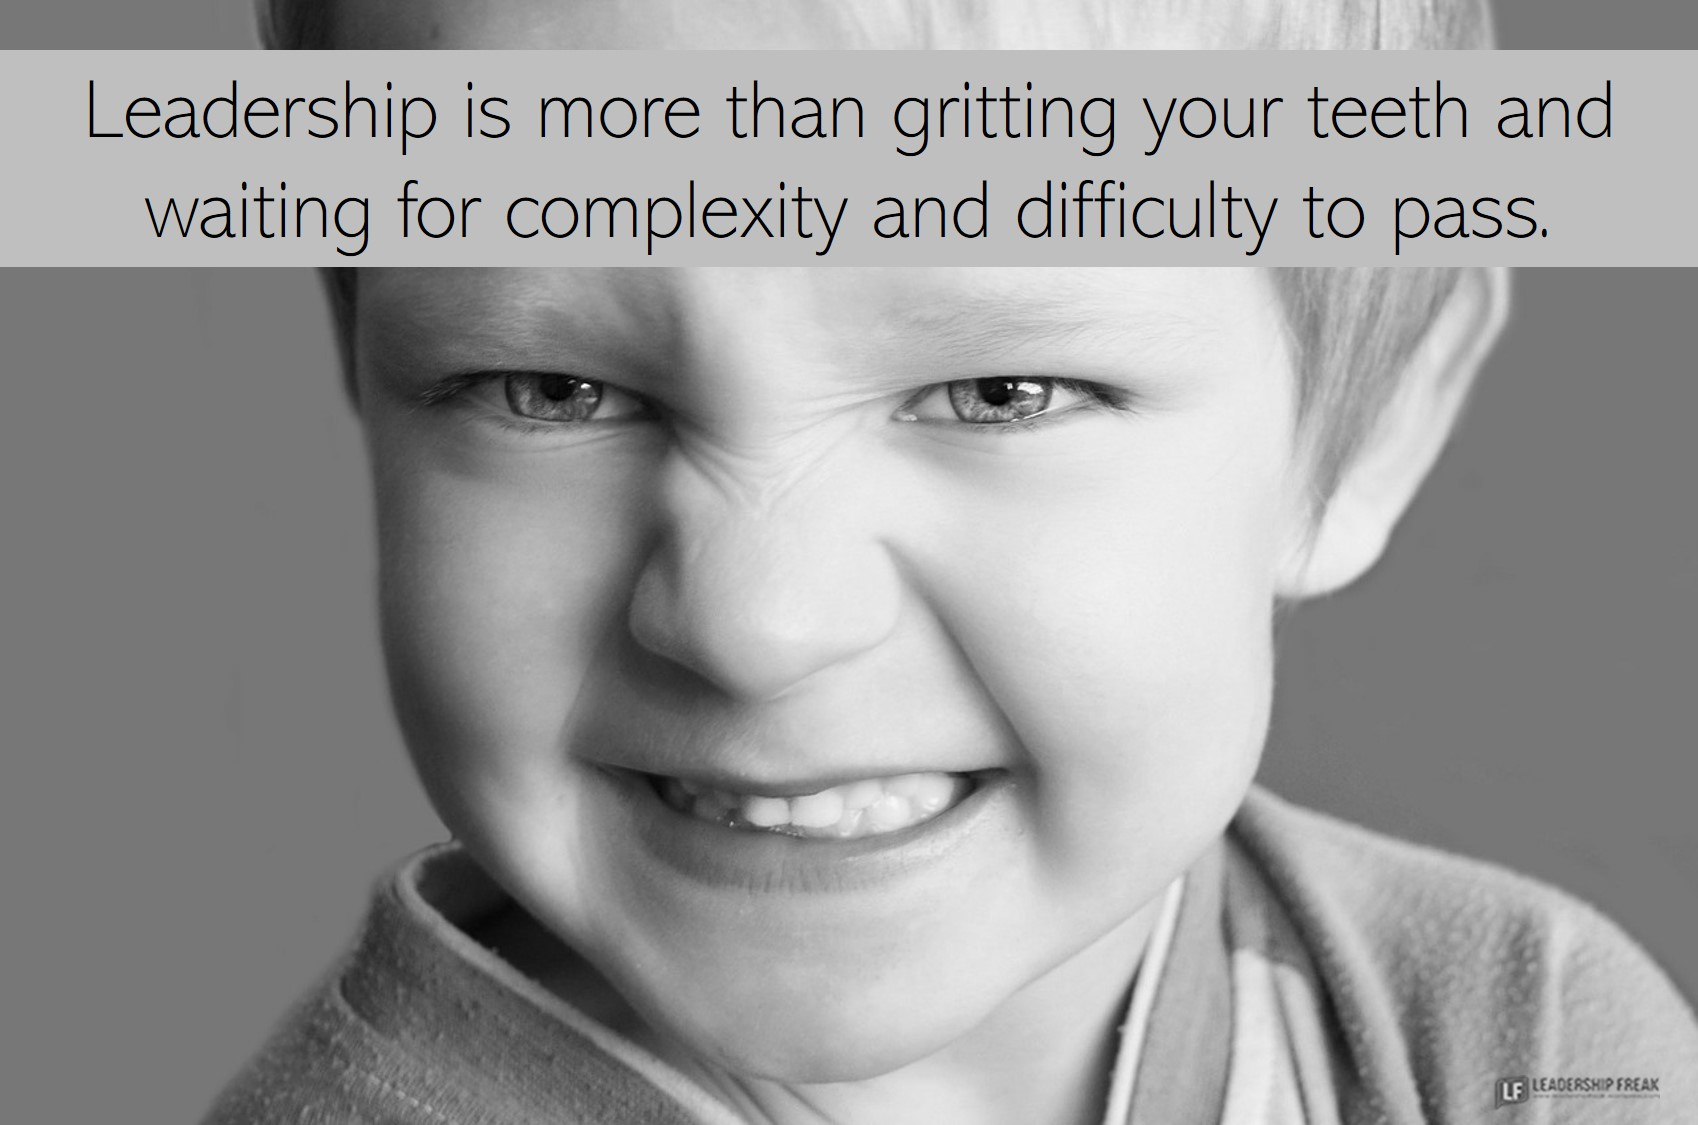 gritting teeth  Leadership is more than gritting your teeth and waiting for complexity and difficulty to pass.